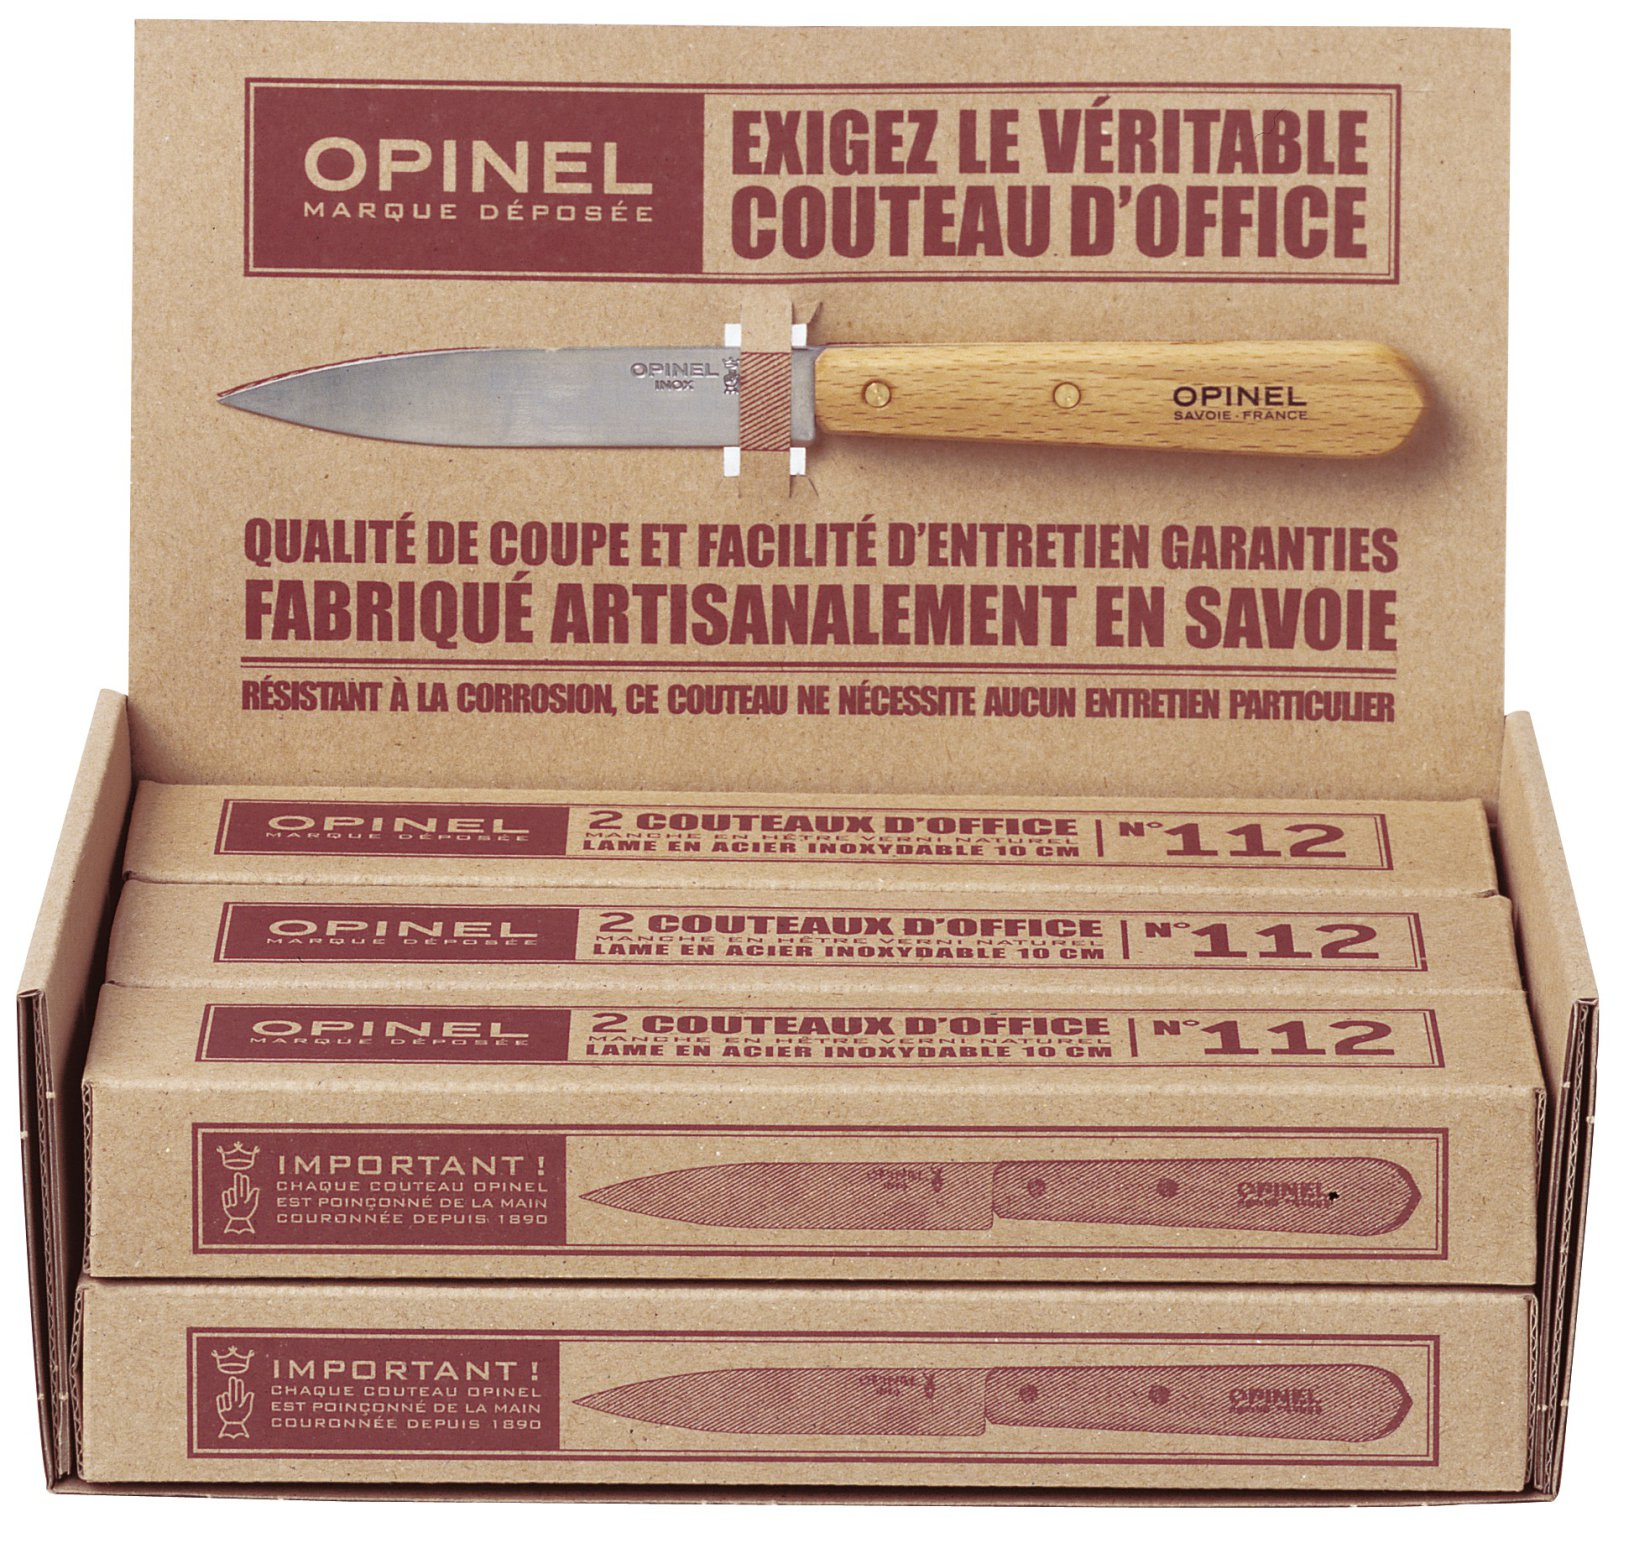 1231 - OPINEL KITCHEN Display of 6 boxes of 2 paring knives N›102 + 1 paring knife 112, natural varnished handle Blade 10cm